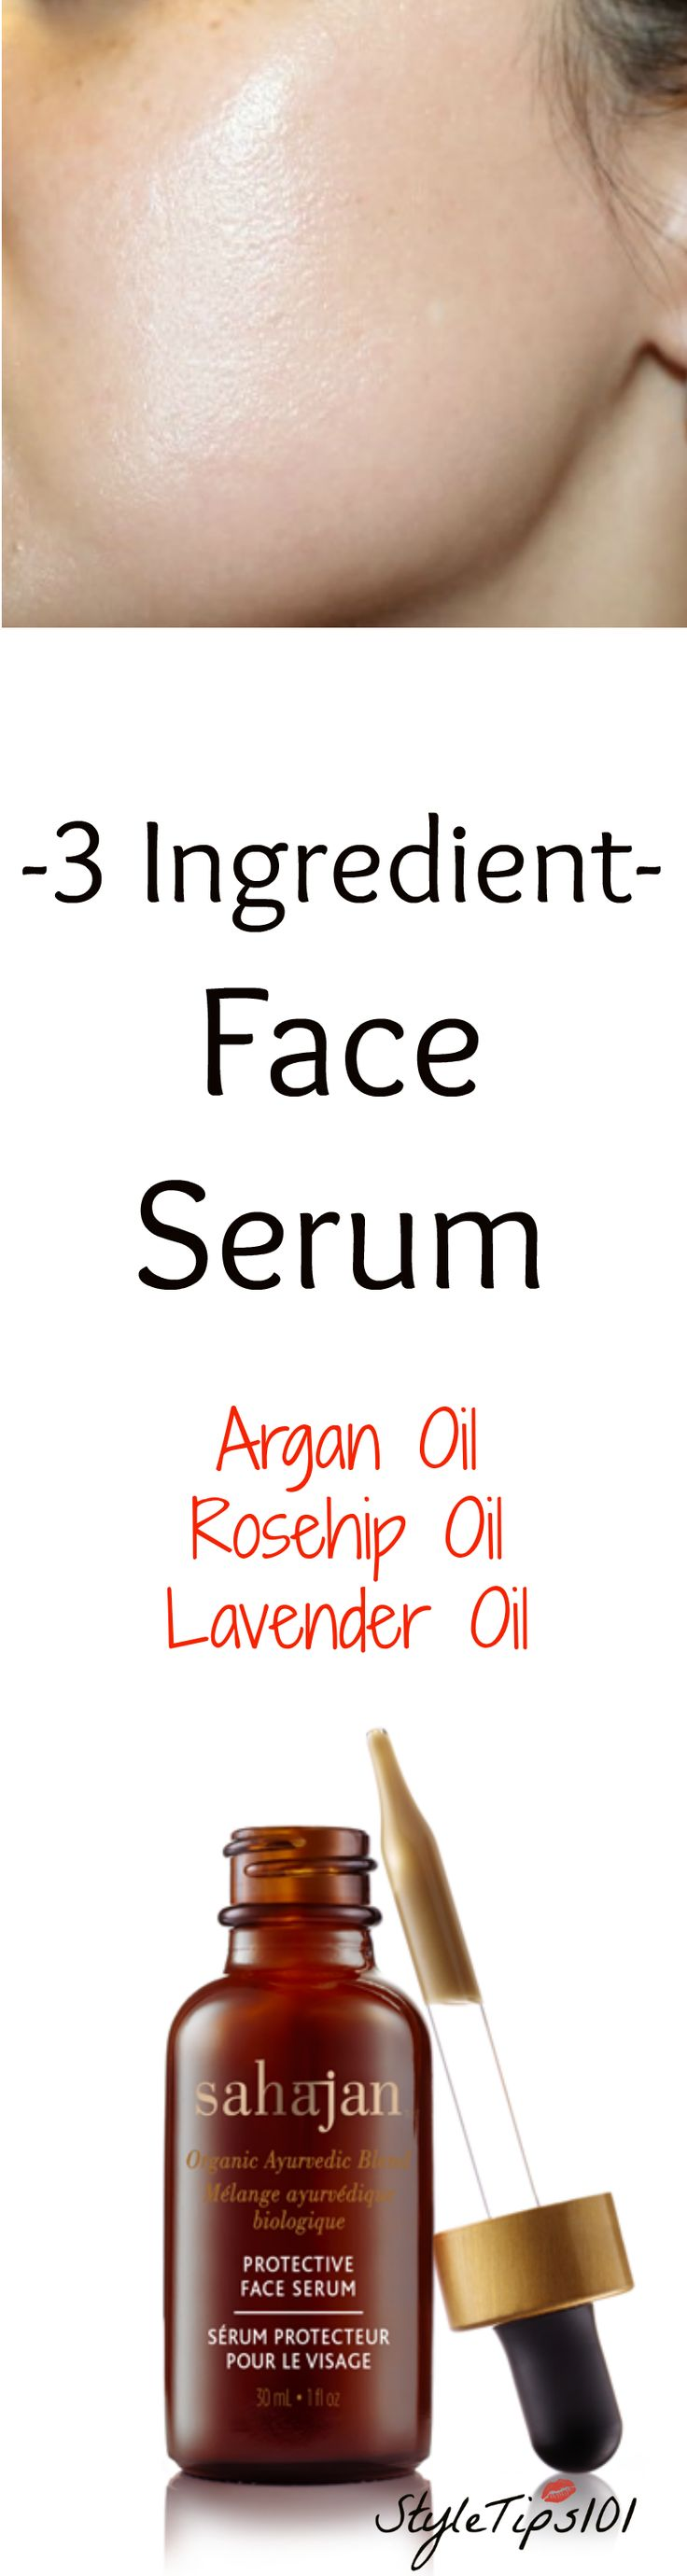 This DIY face serum is super easy to make and benefits all skin types including dry skin, acne prone skin, and especially aging skin. The DIY face serum is super easy to prepare, is all natural, and only contains 3 ingredients! Because this serum contains only essential oils, make sure you choose a good, organic… Read More »